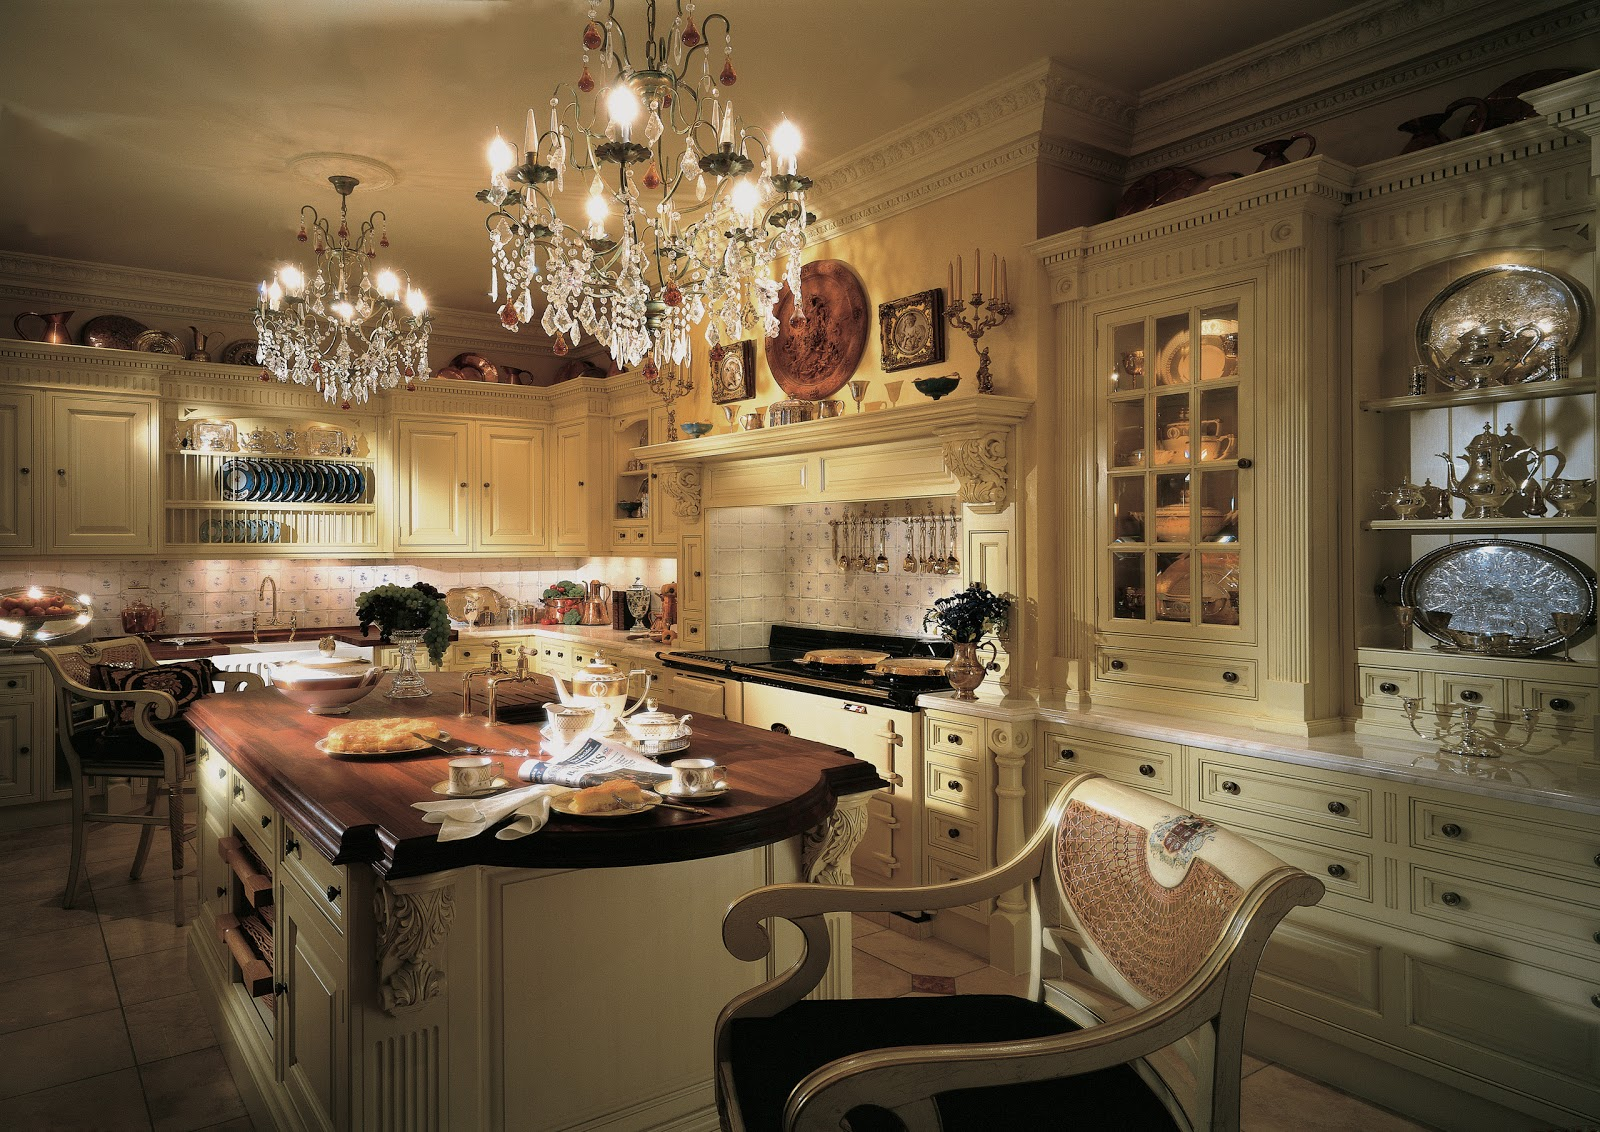 Kitchen Design Victoria Tradition Interiors Of Nottingham Clive Christian The Company